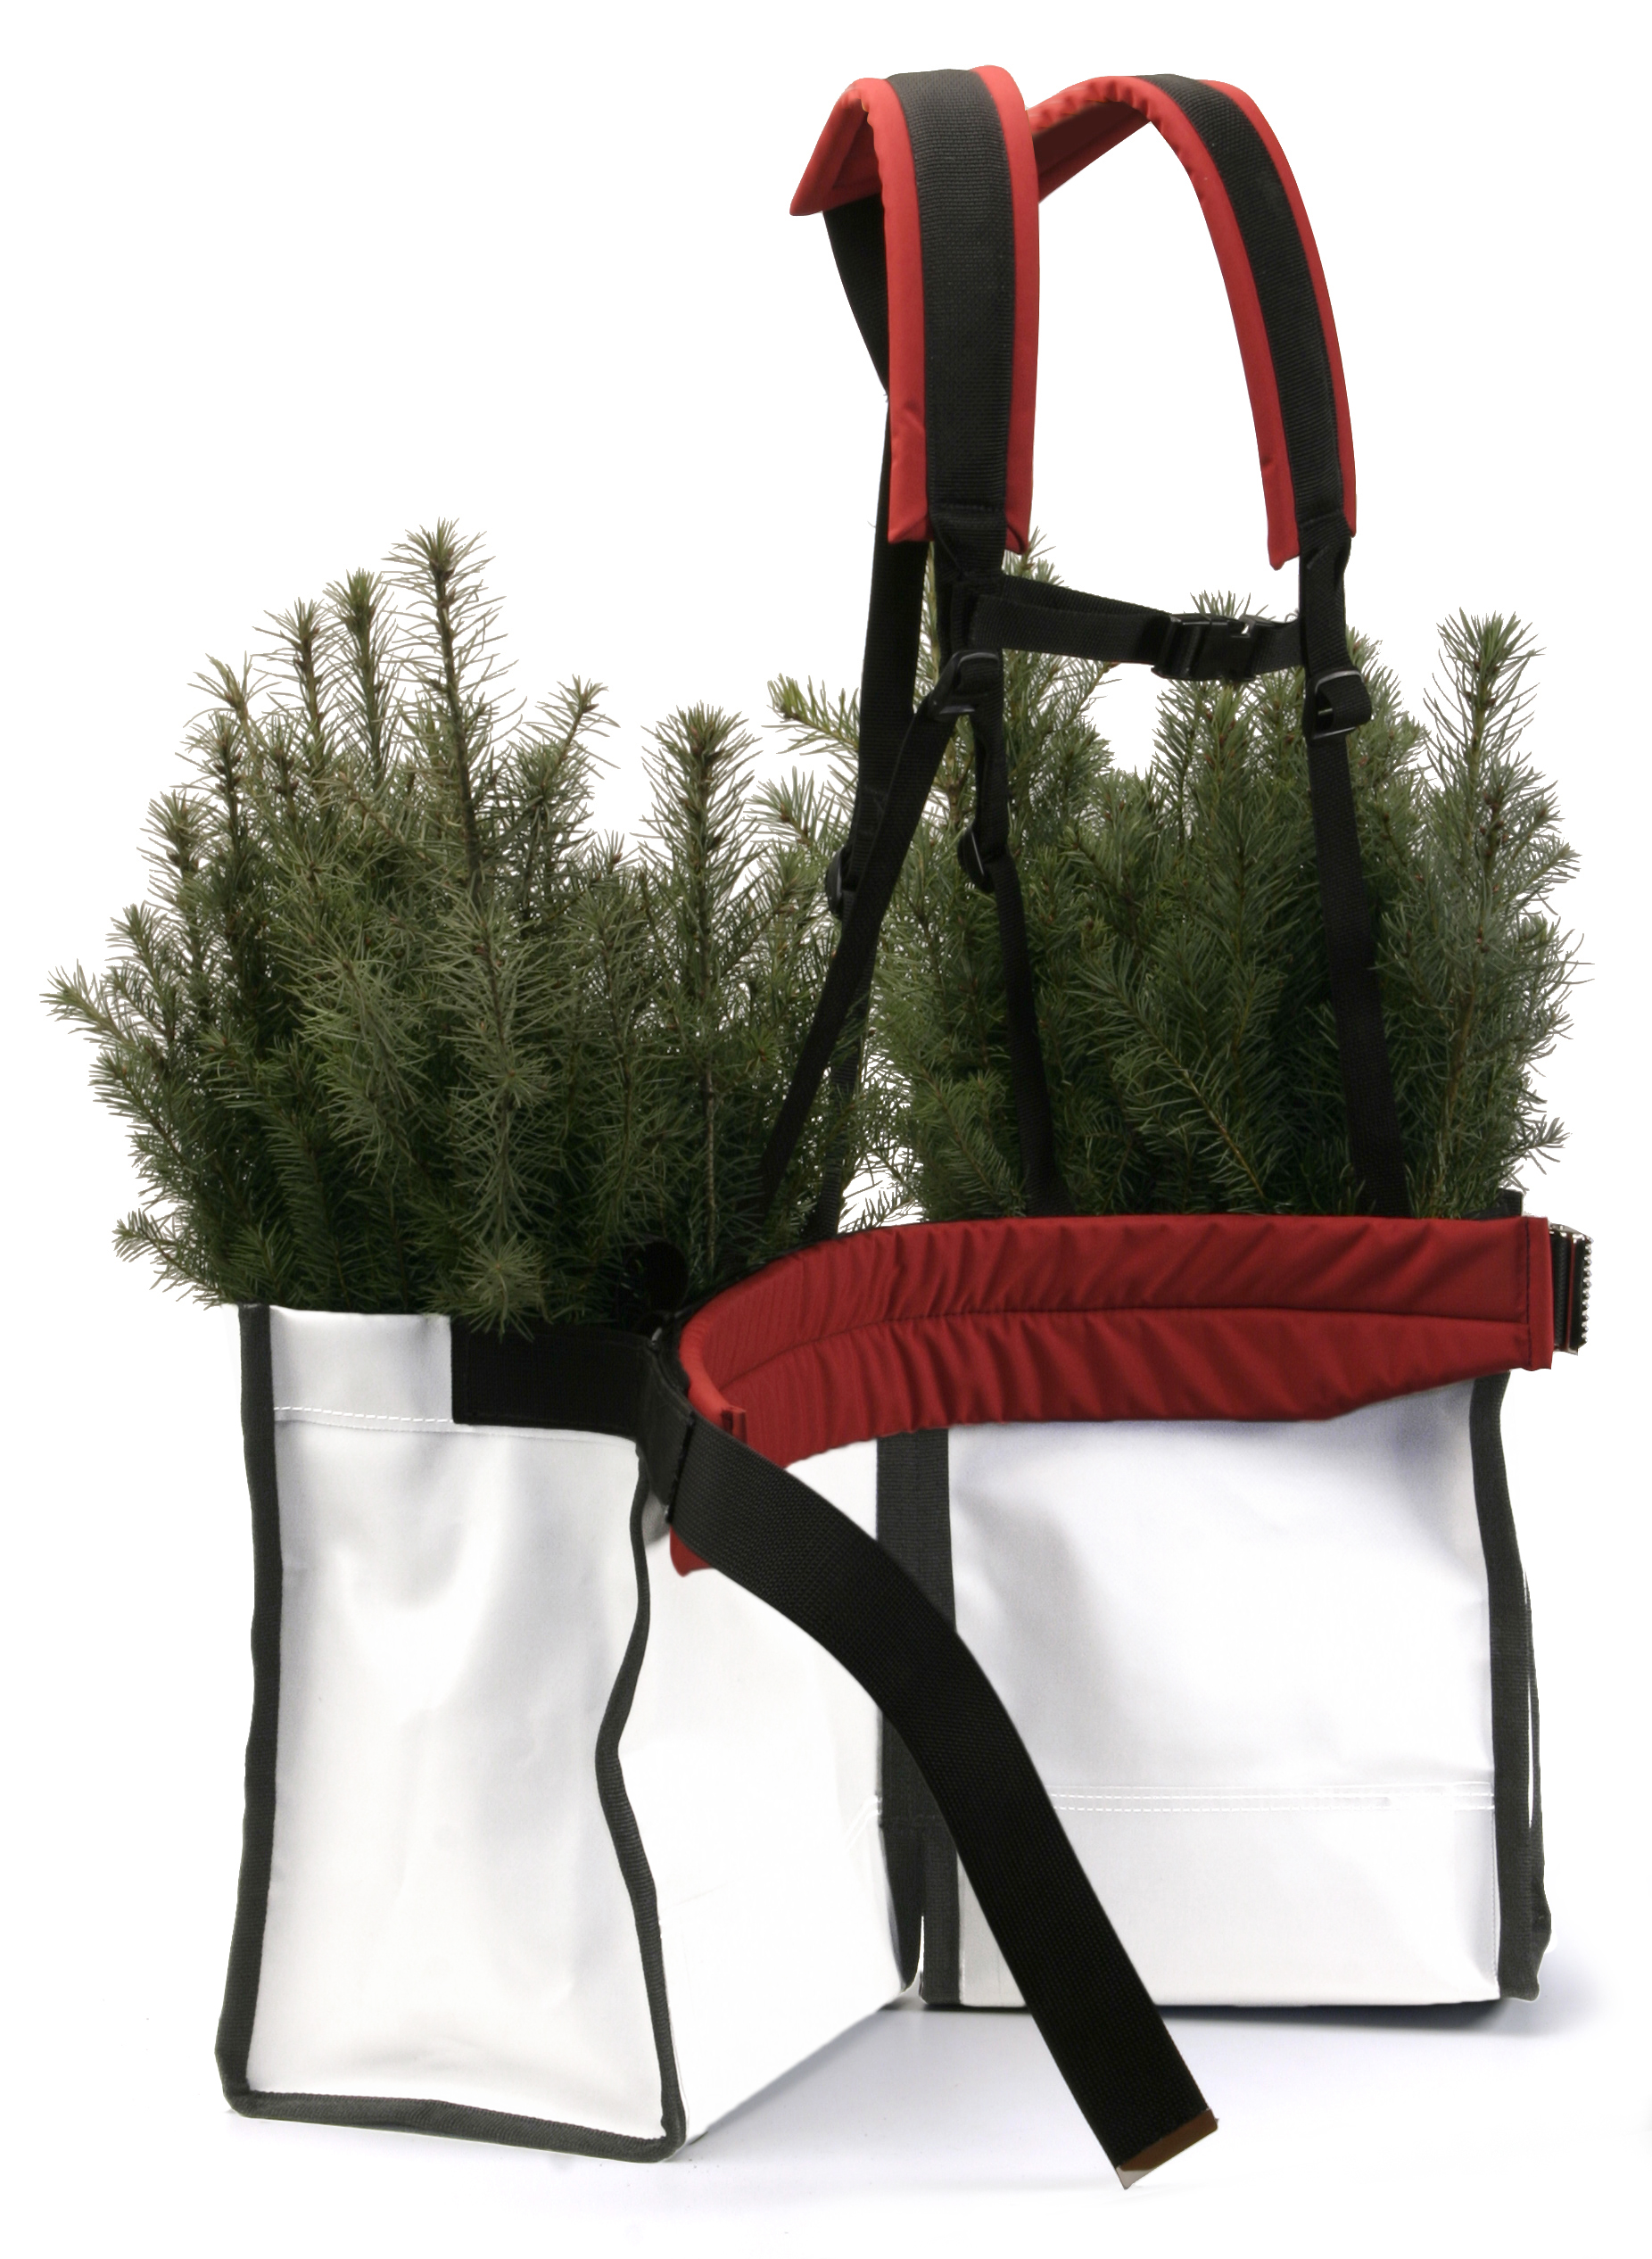 FOR TPB/EG - Pacforest El Grande PRO Tree Planting Bag